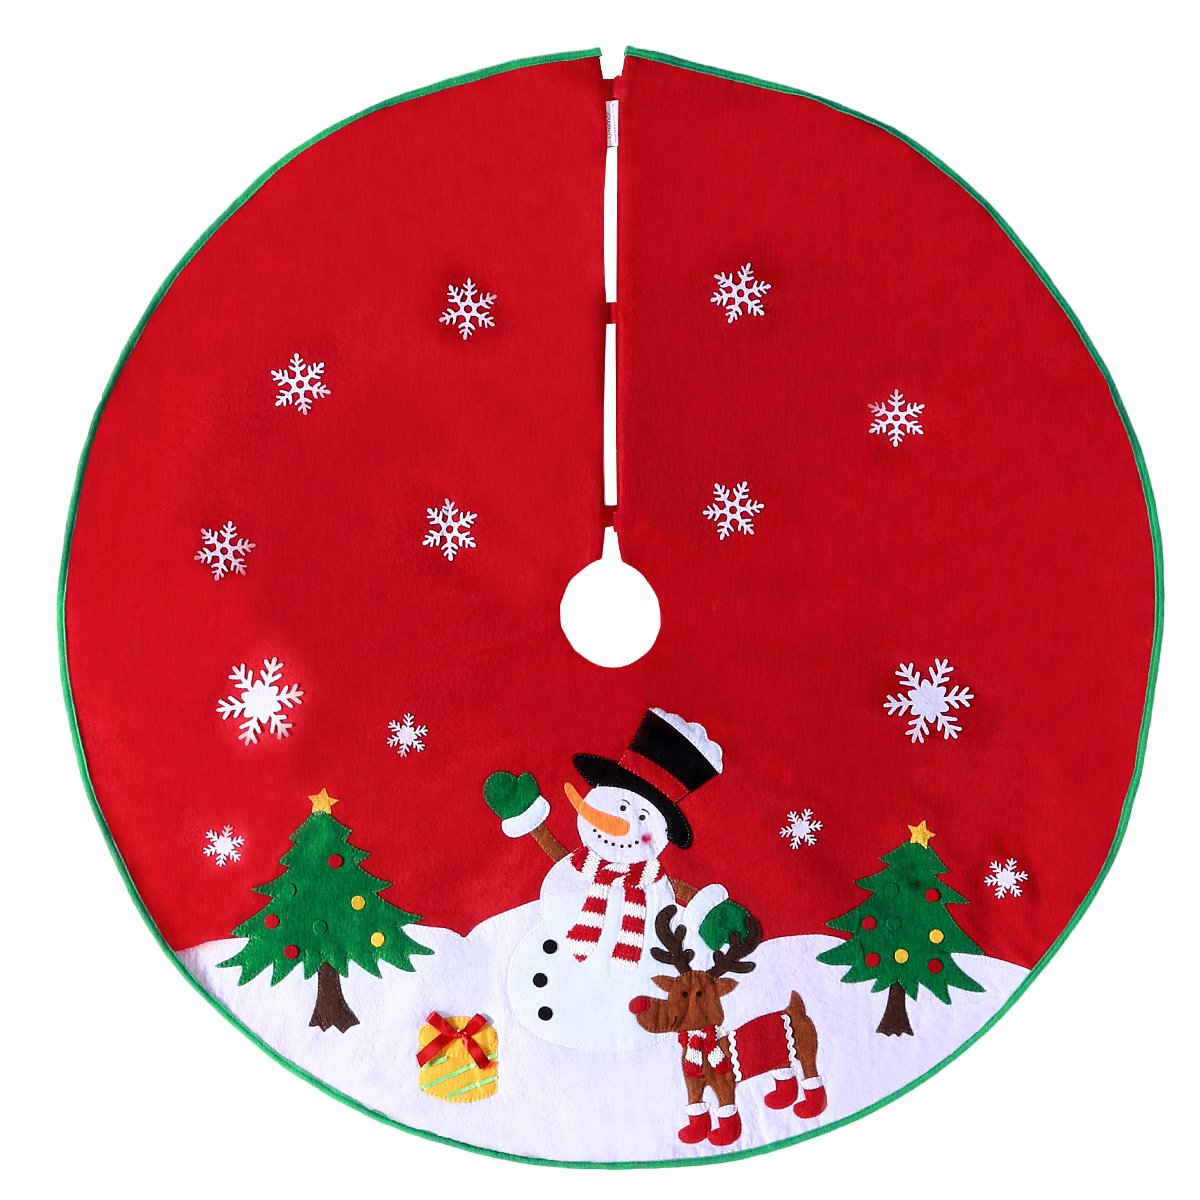 Christmas Tree Skirt with Reindeer Snowflakes and Snowman Design (106CM Red) Unomor